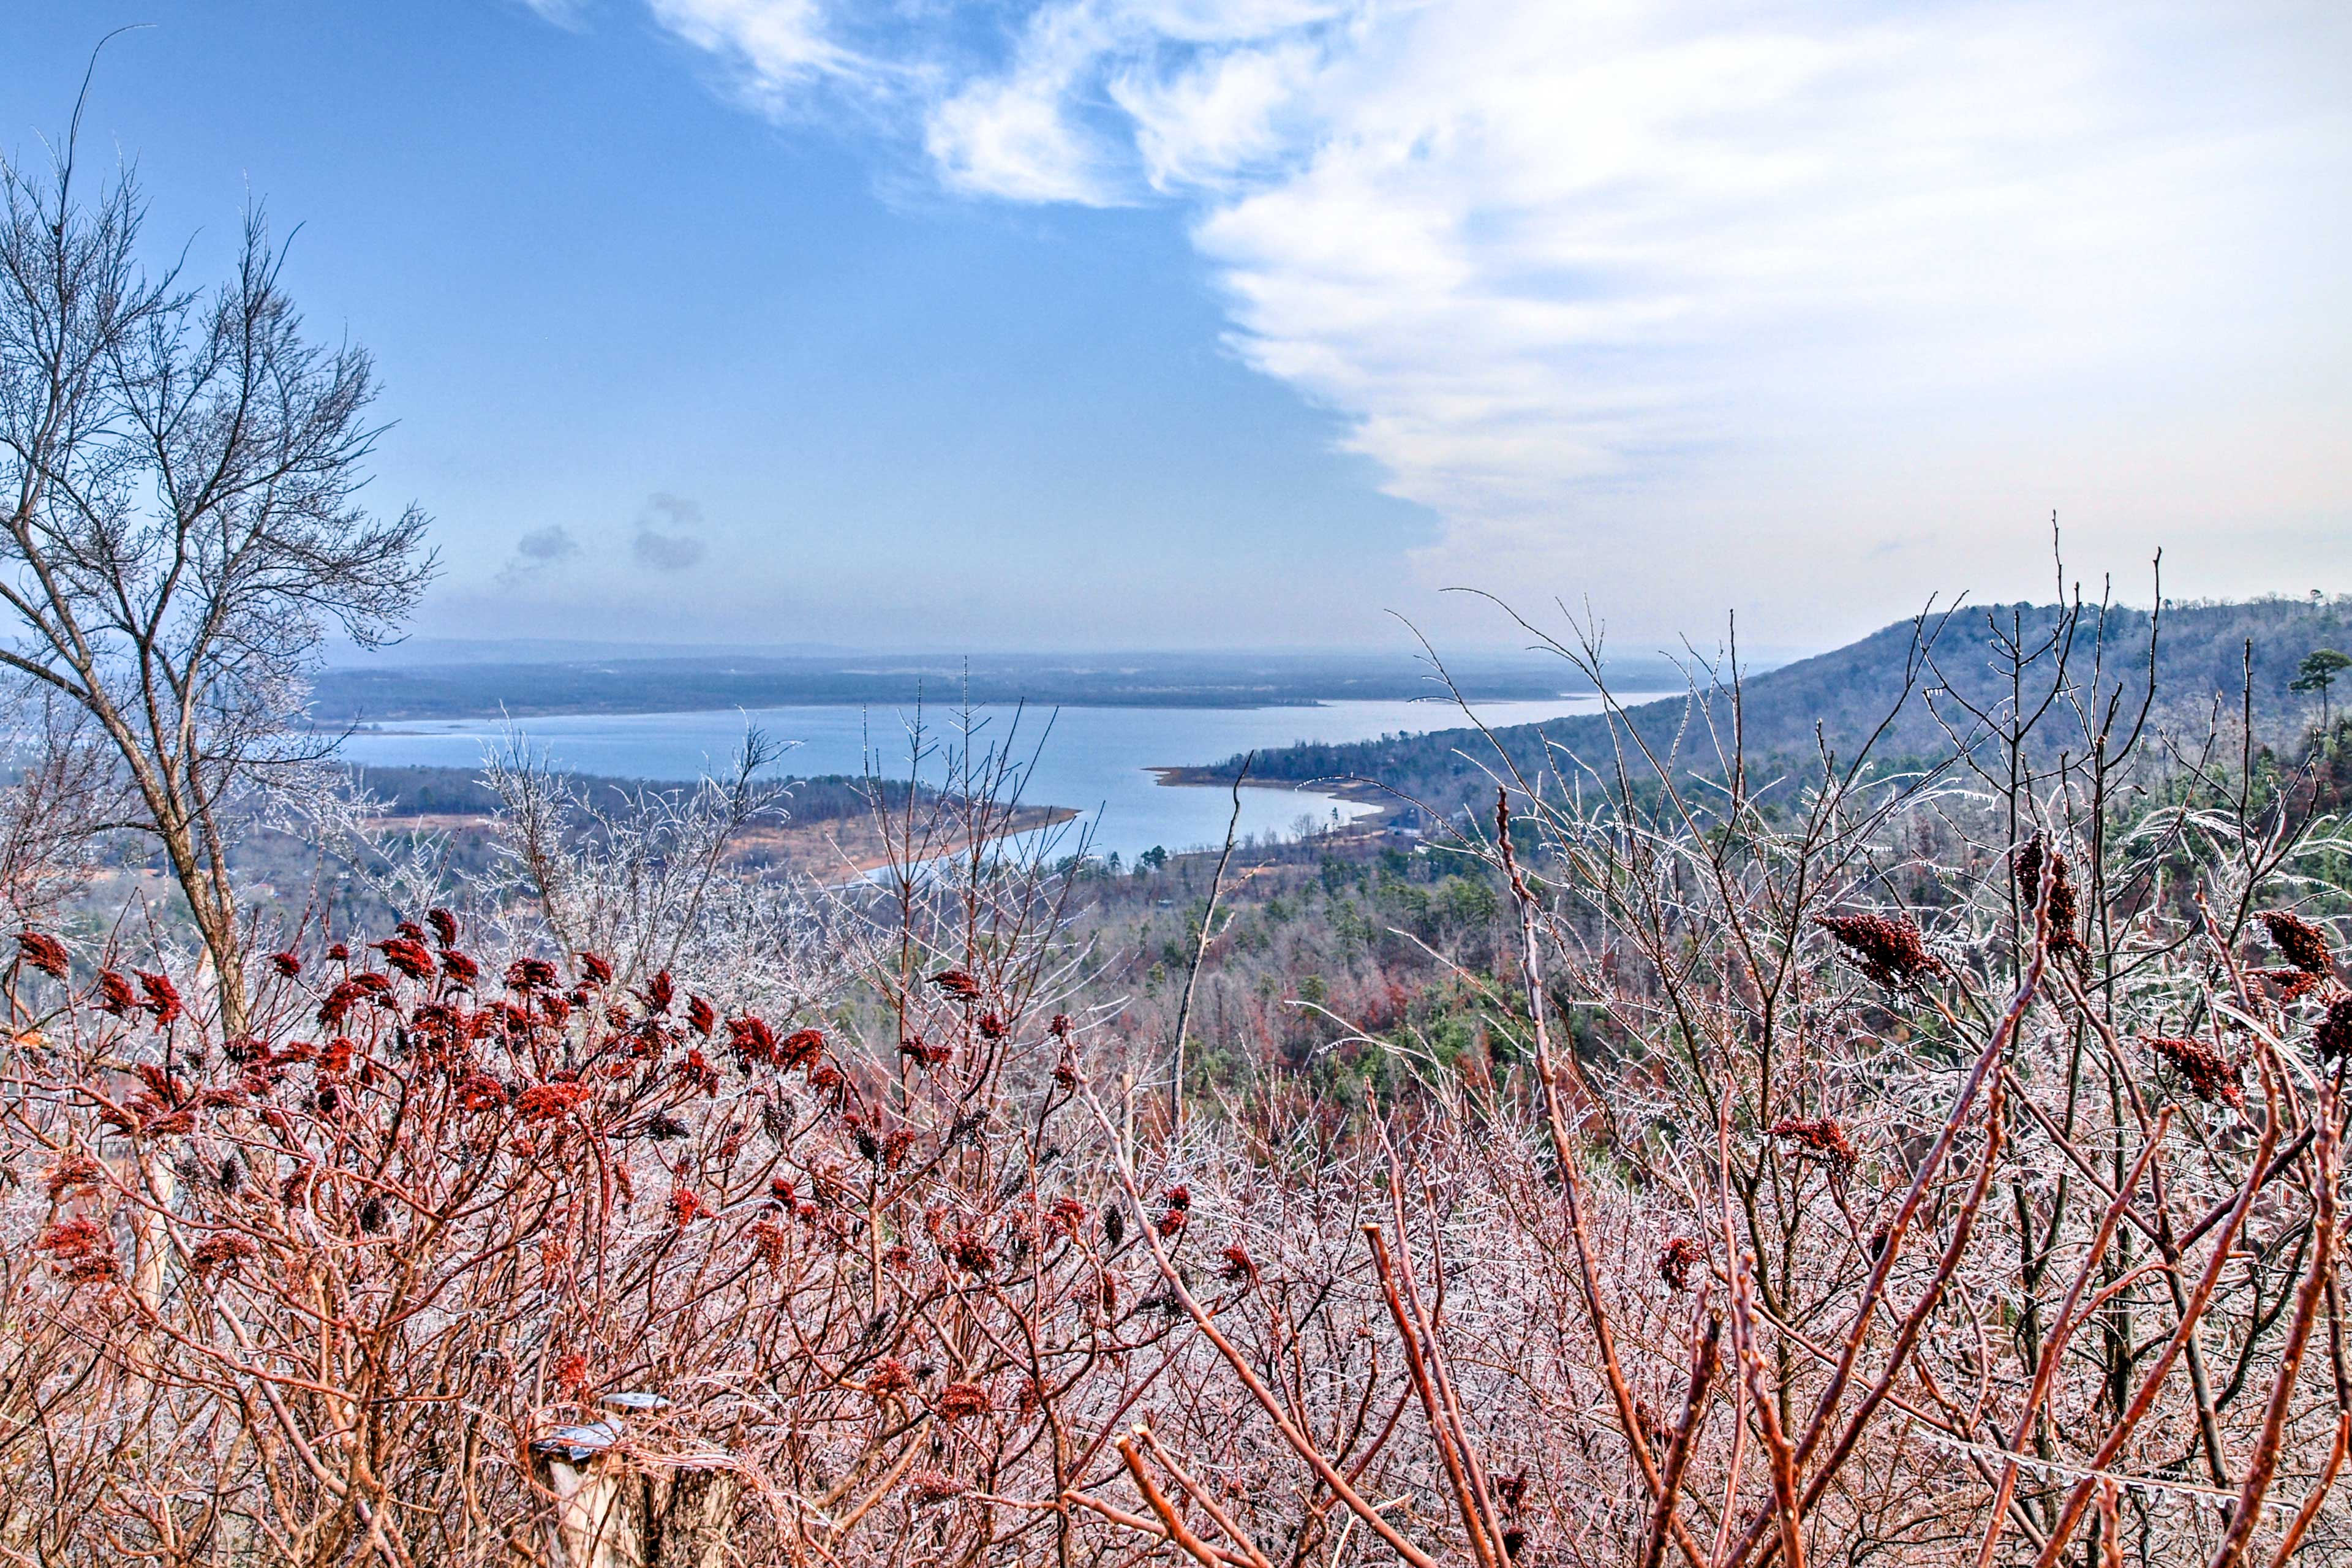 The views are sure to please during your next Arkansas retreat!